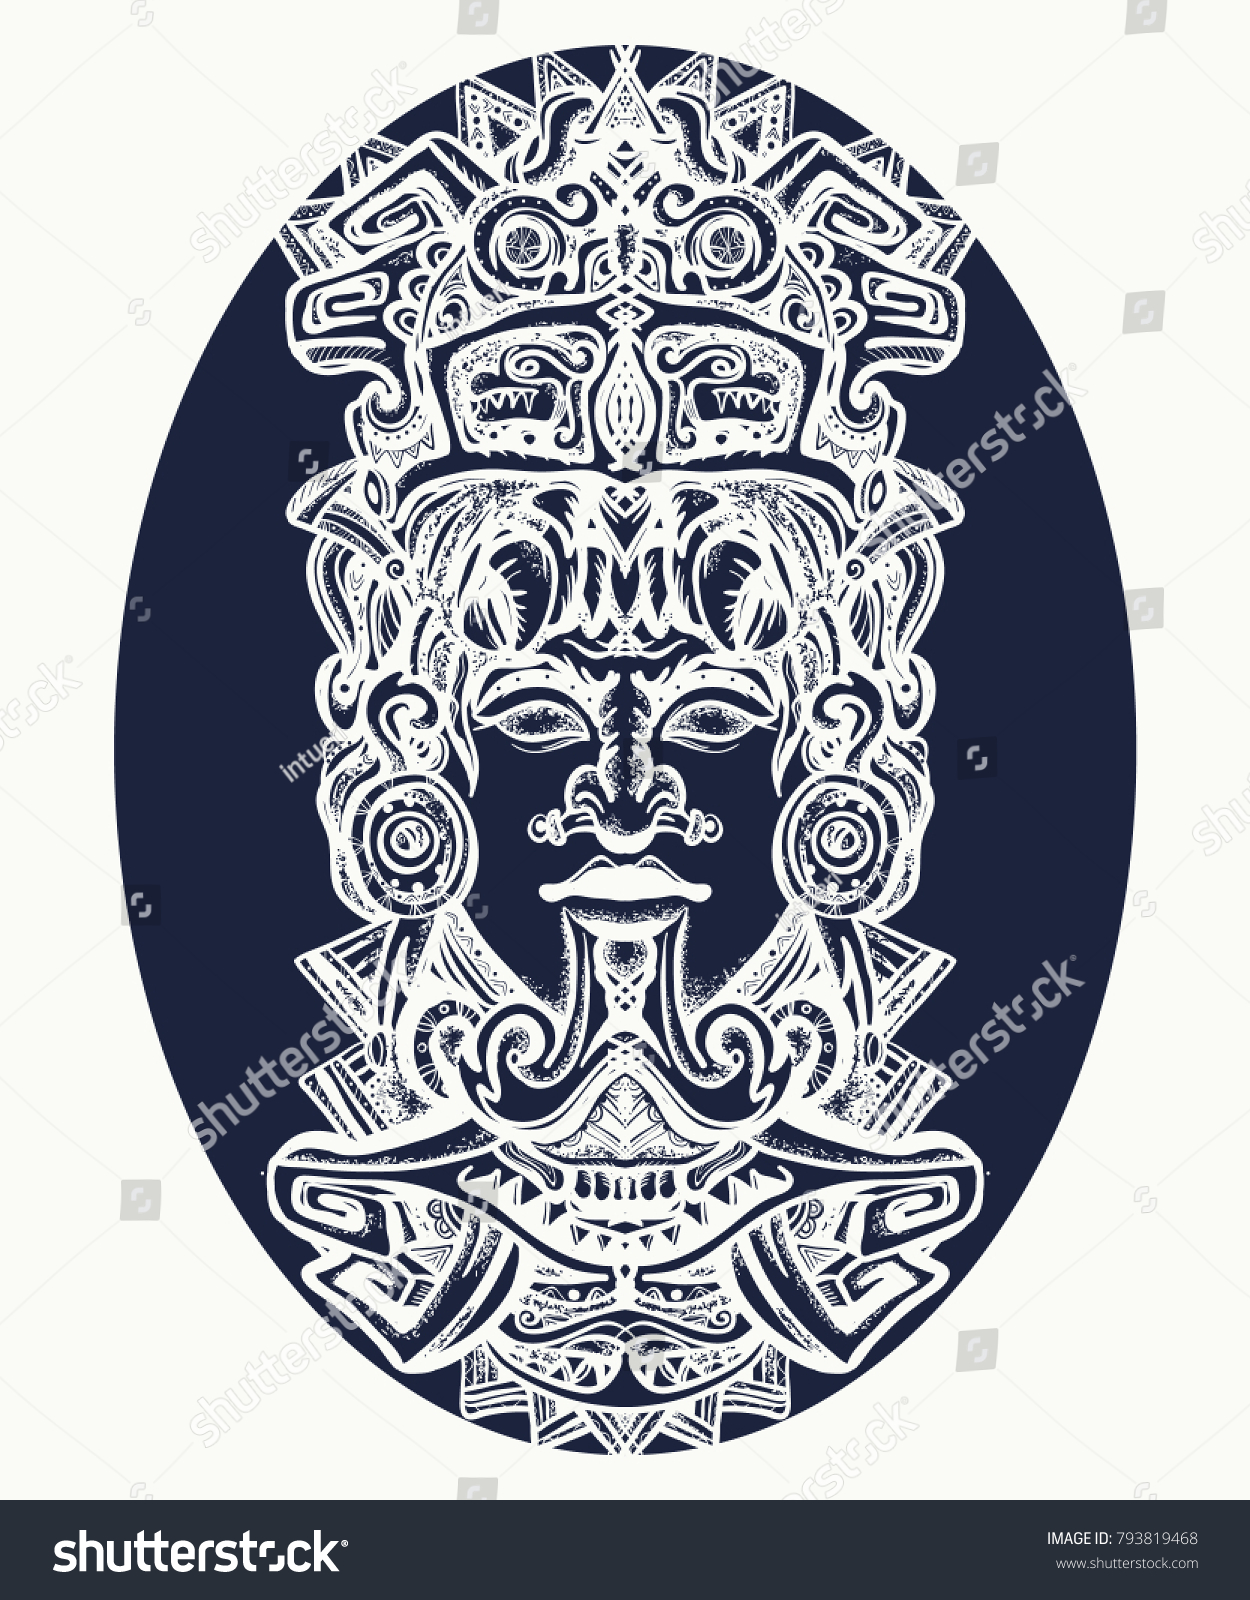 Aztec Temple Tattoo indian mayan carved stone tattoo art   royalty-free stock image